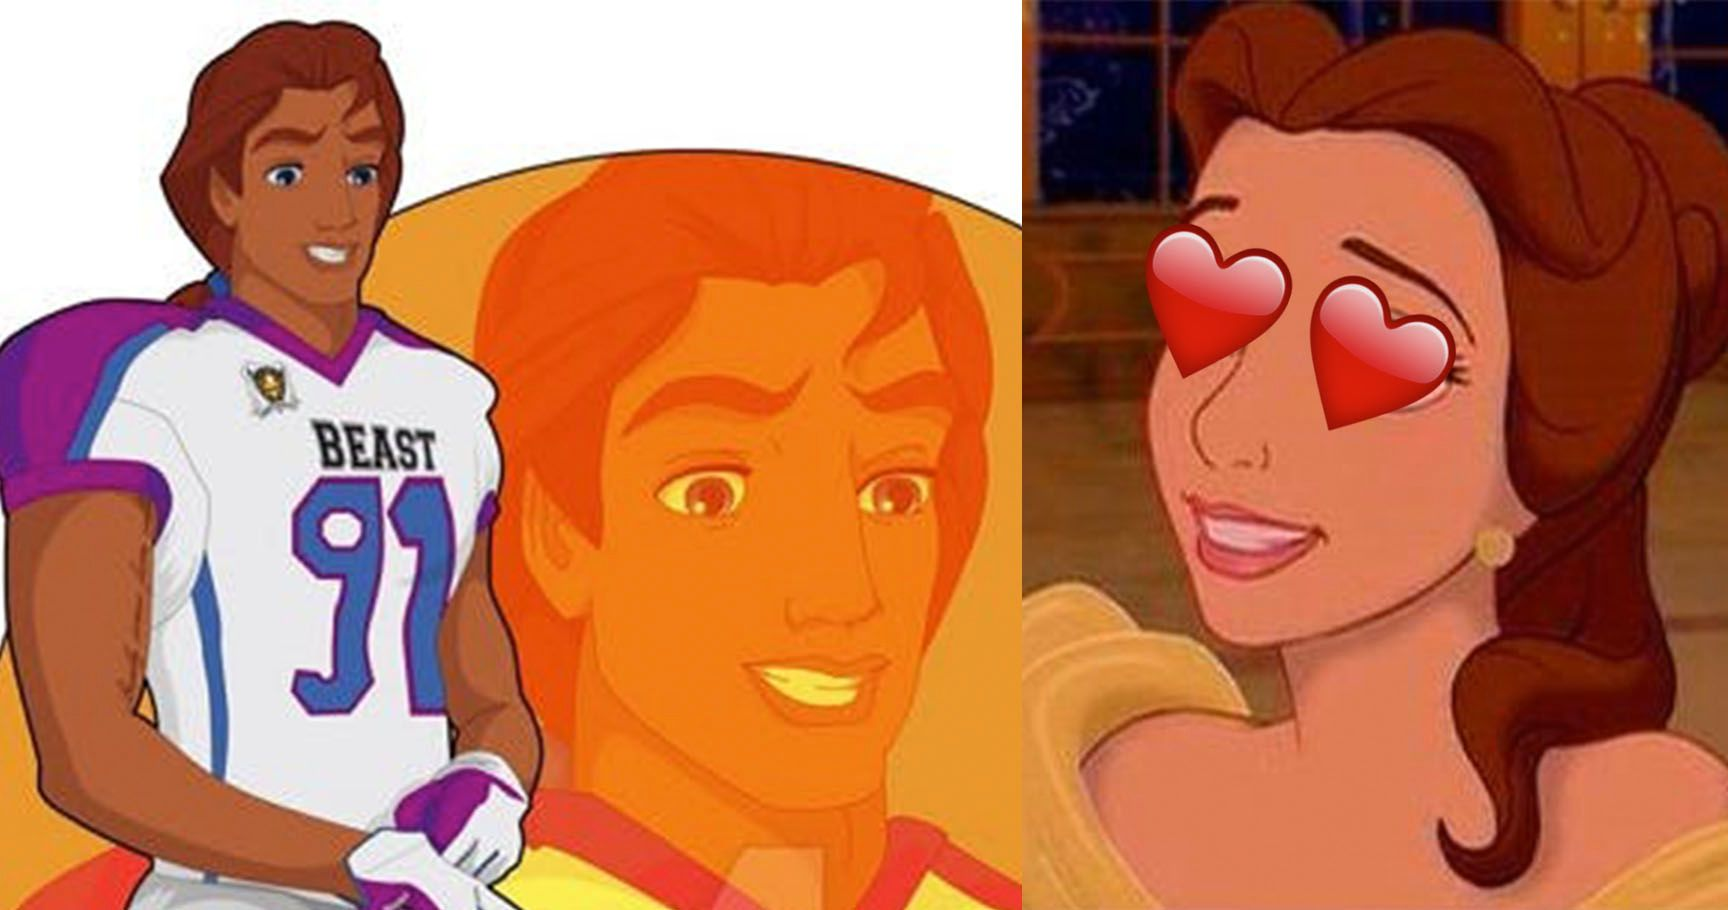 15 Disney Princes Reimagined As Modern Day Baes